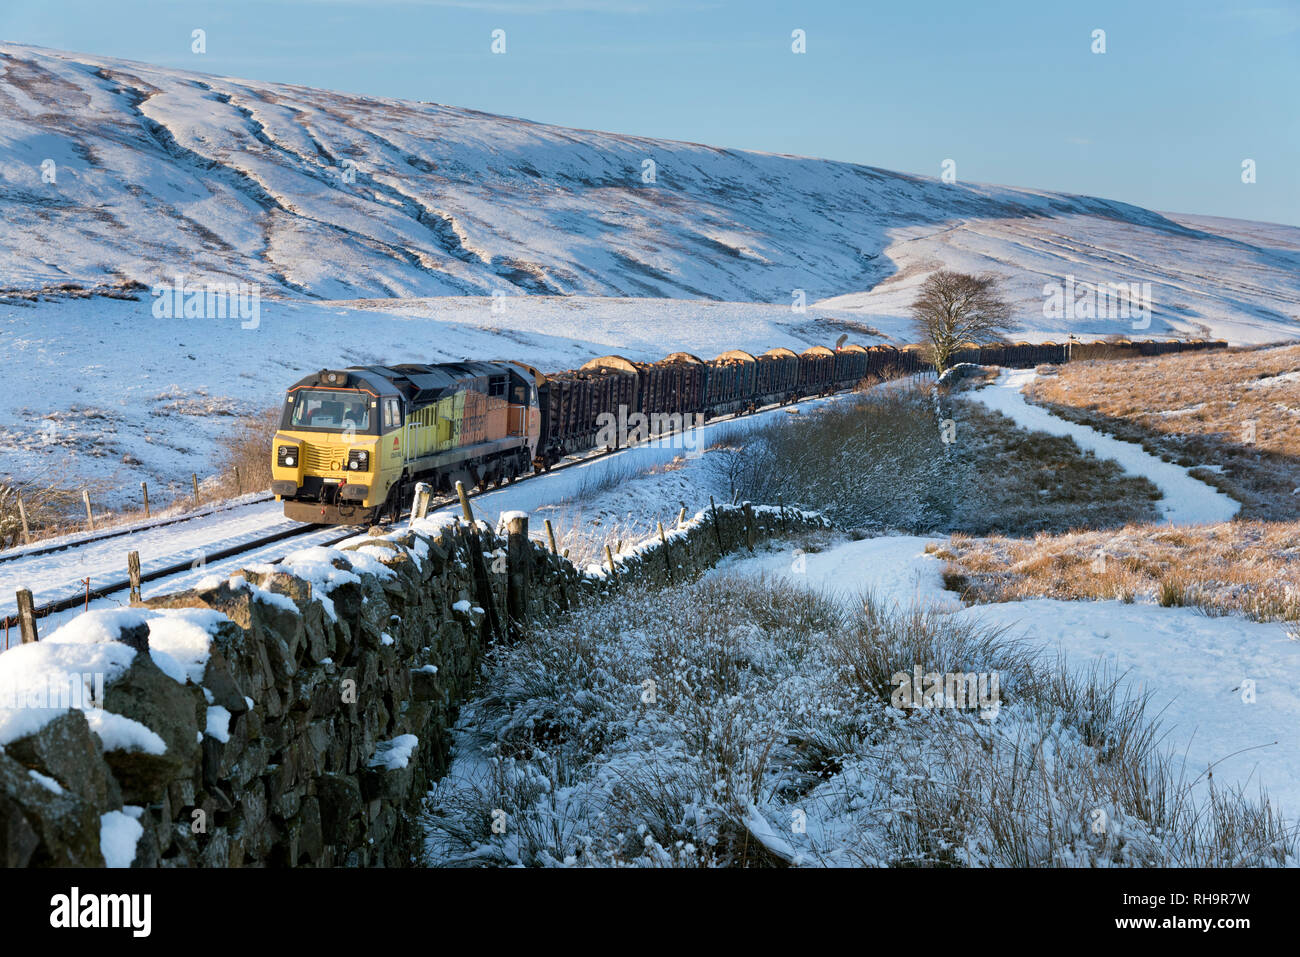 Train transporting logs to the Kronospan paper works at Chirk, here heading south on the Settle-Carlisle railway line at Ribblehead, North Yorkshire - Stock Image